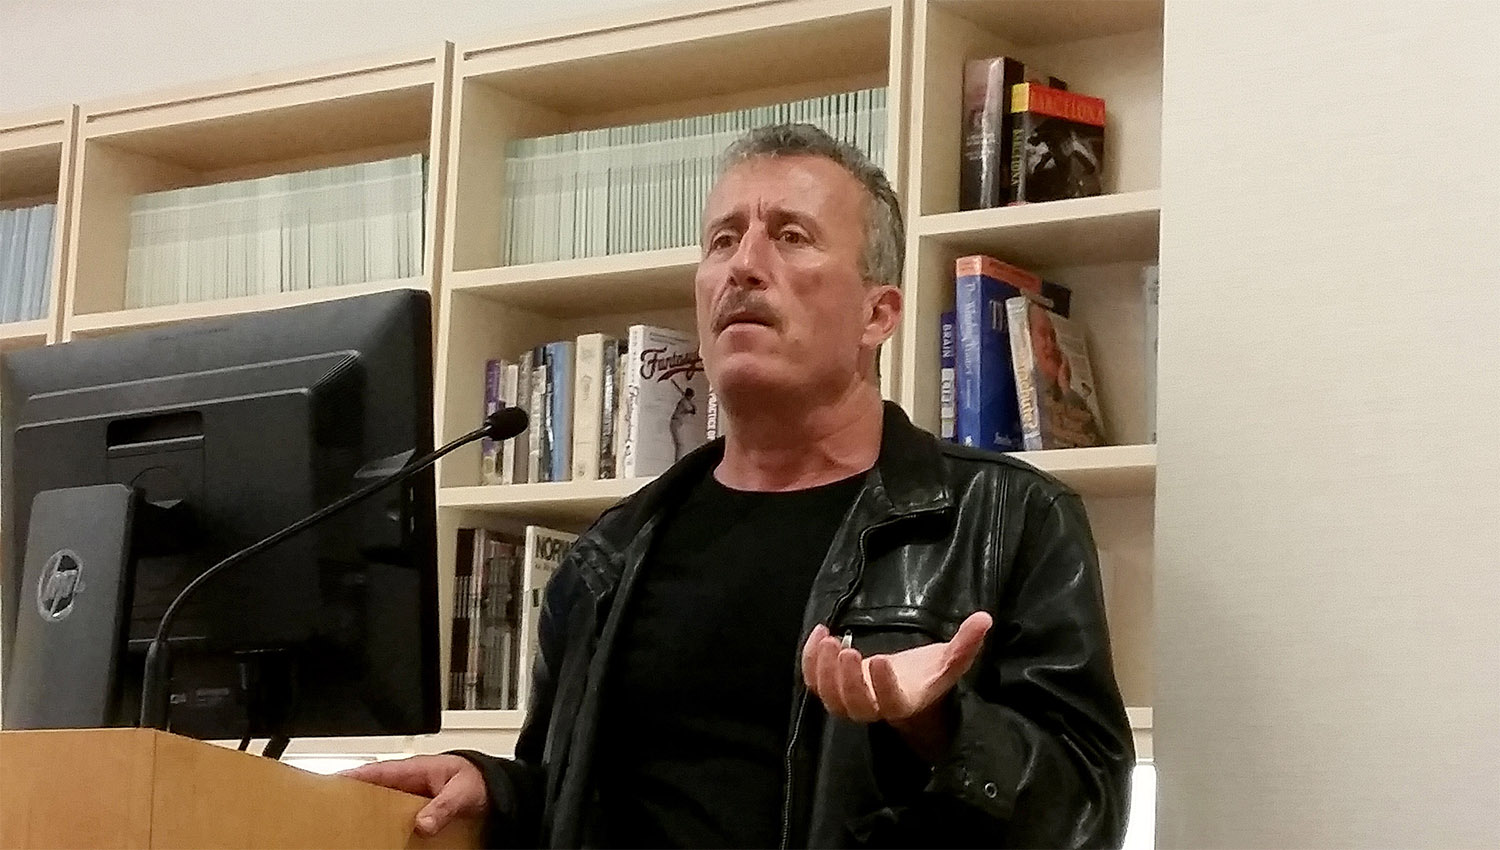 'We Are with Humanity; We Are Against Occupation': Bassem Tamimi on Life and Resistance in West Bank Village Nabi Saleh